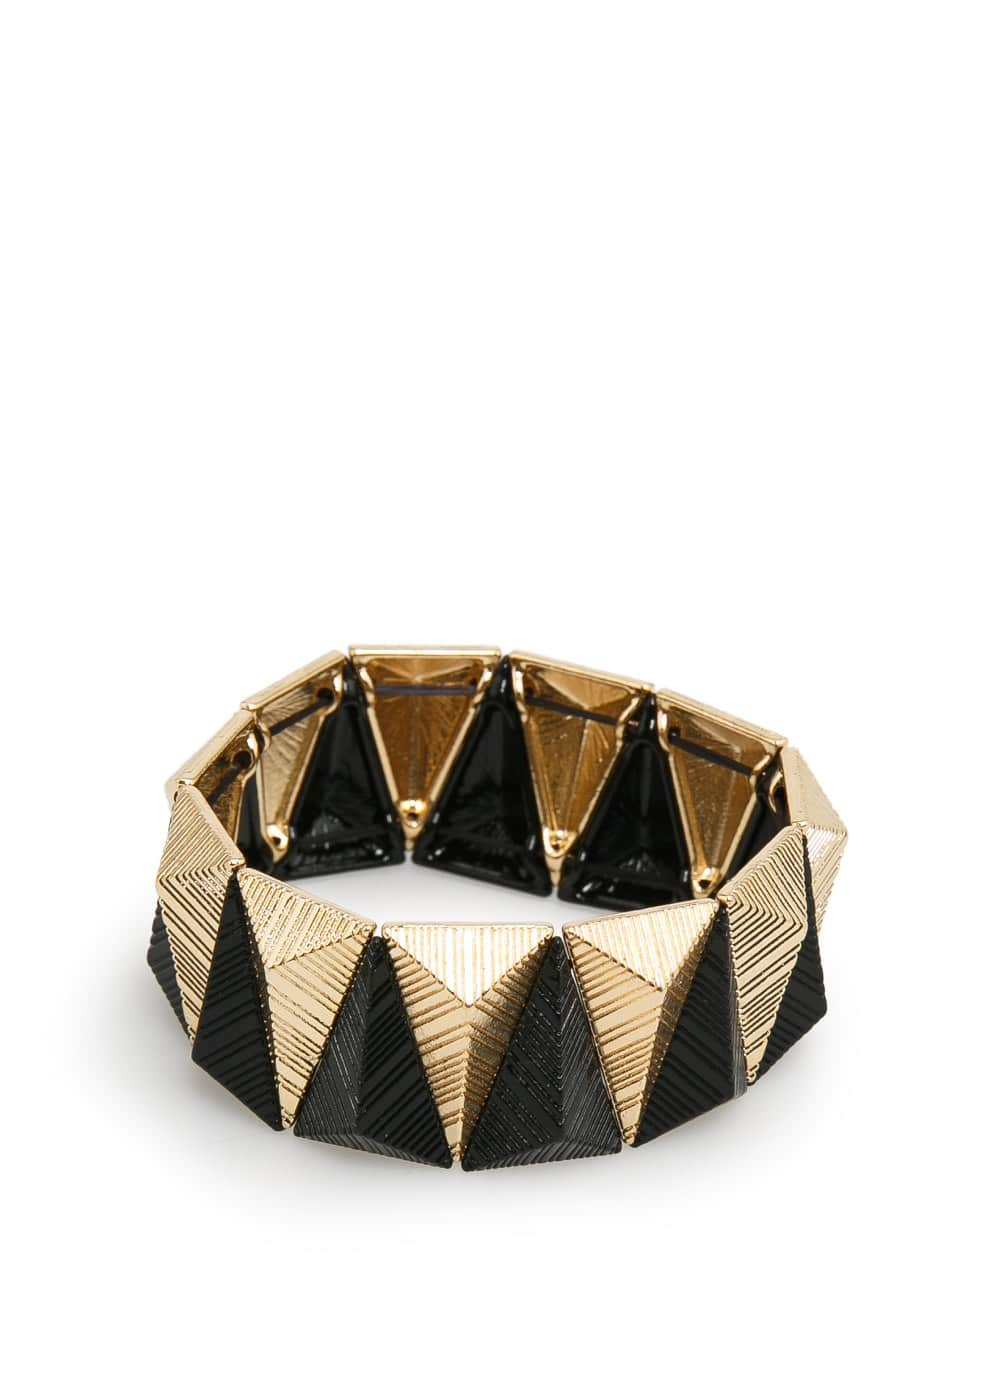 Triangular bead bracelet